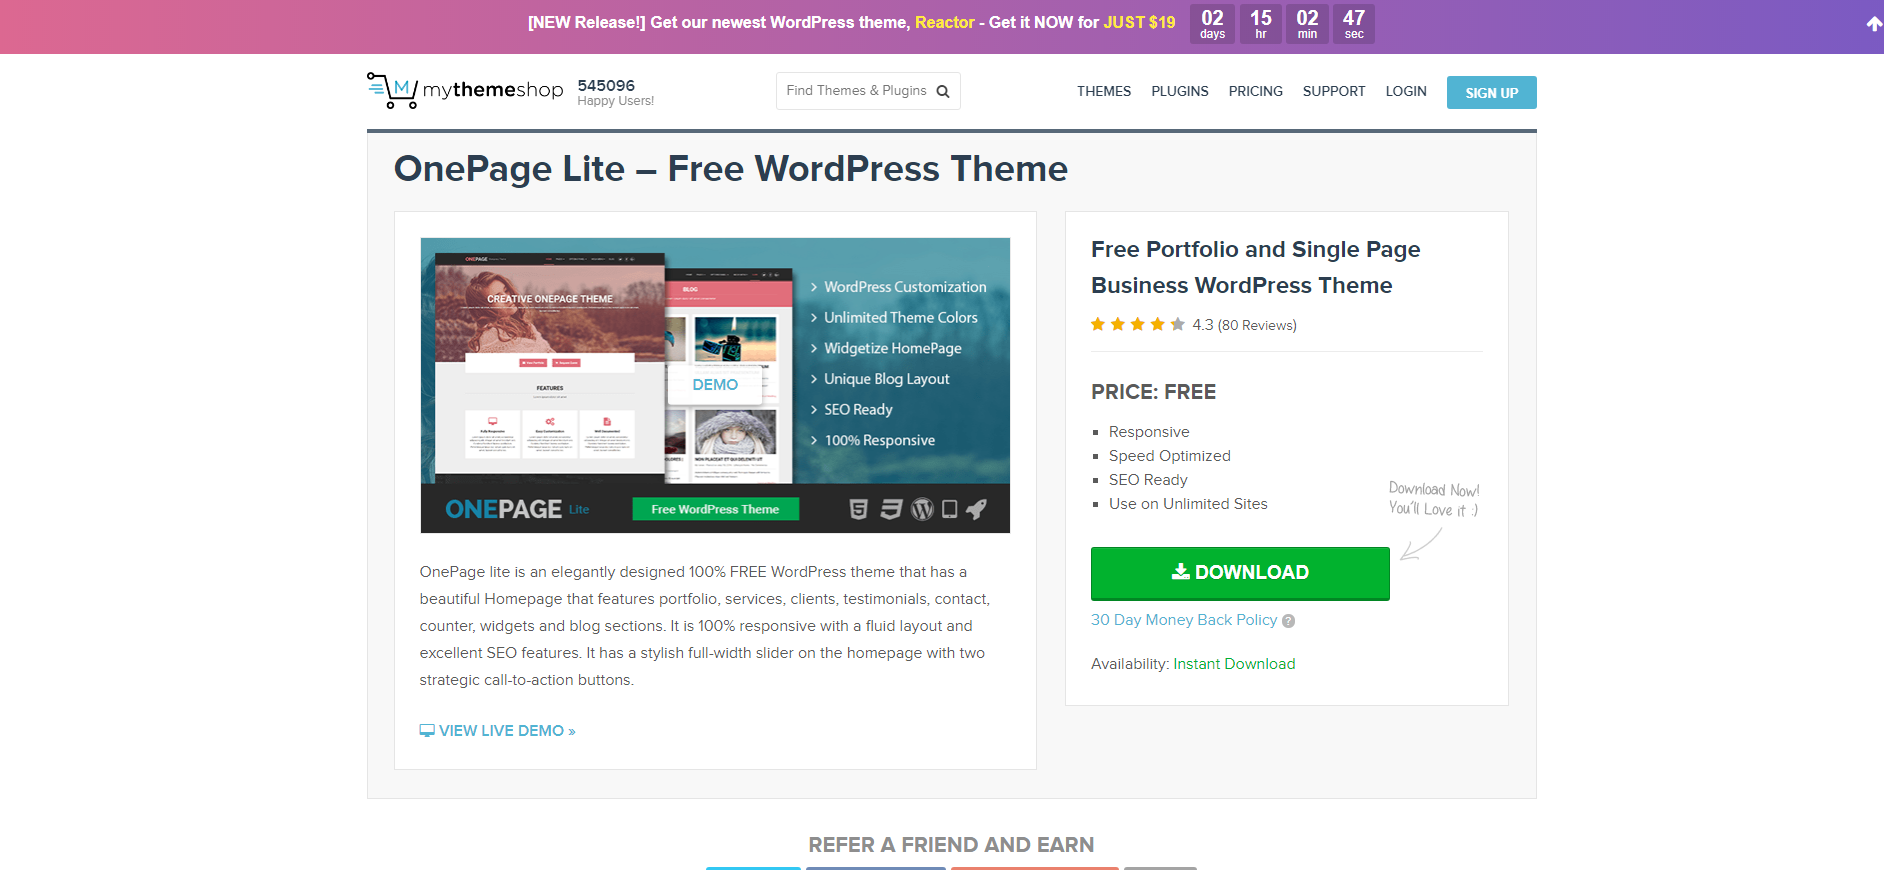 CSSIgniter | 15 Places To Find The Best Free WordPress Themes